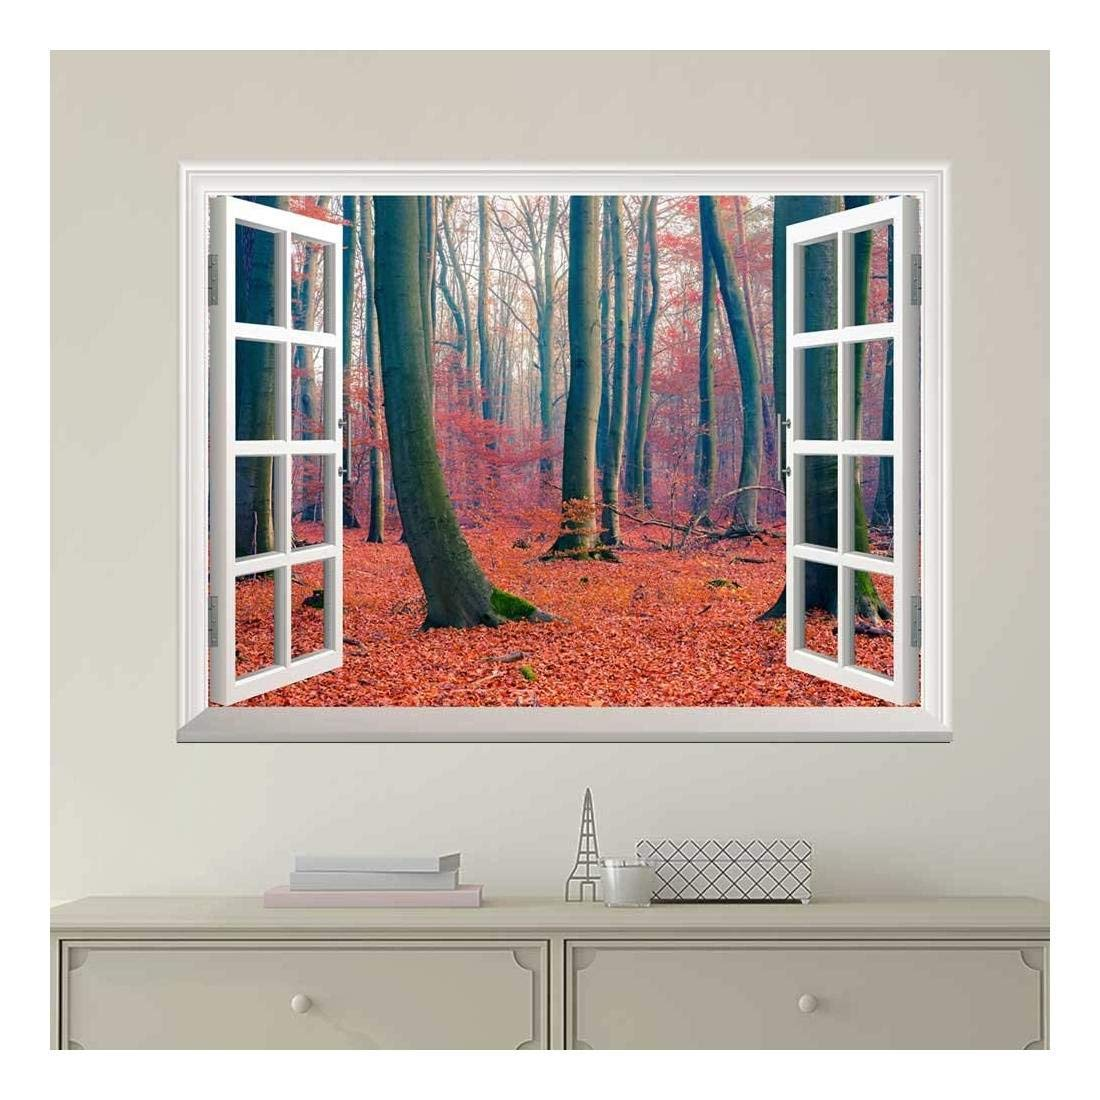 wall26 Modern White Window Looking Out Into a Forest During Fall Time - Wall Mural, Removable Sticker, Home Decor - 36x48 inches